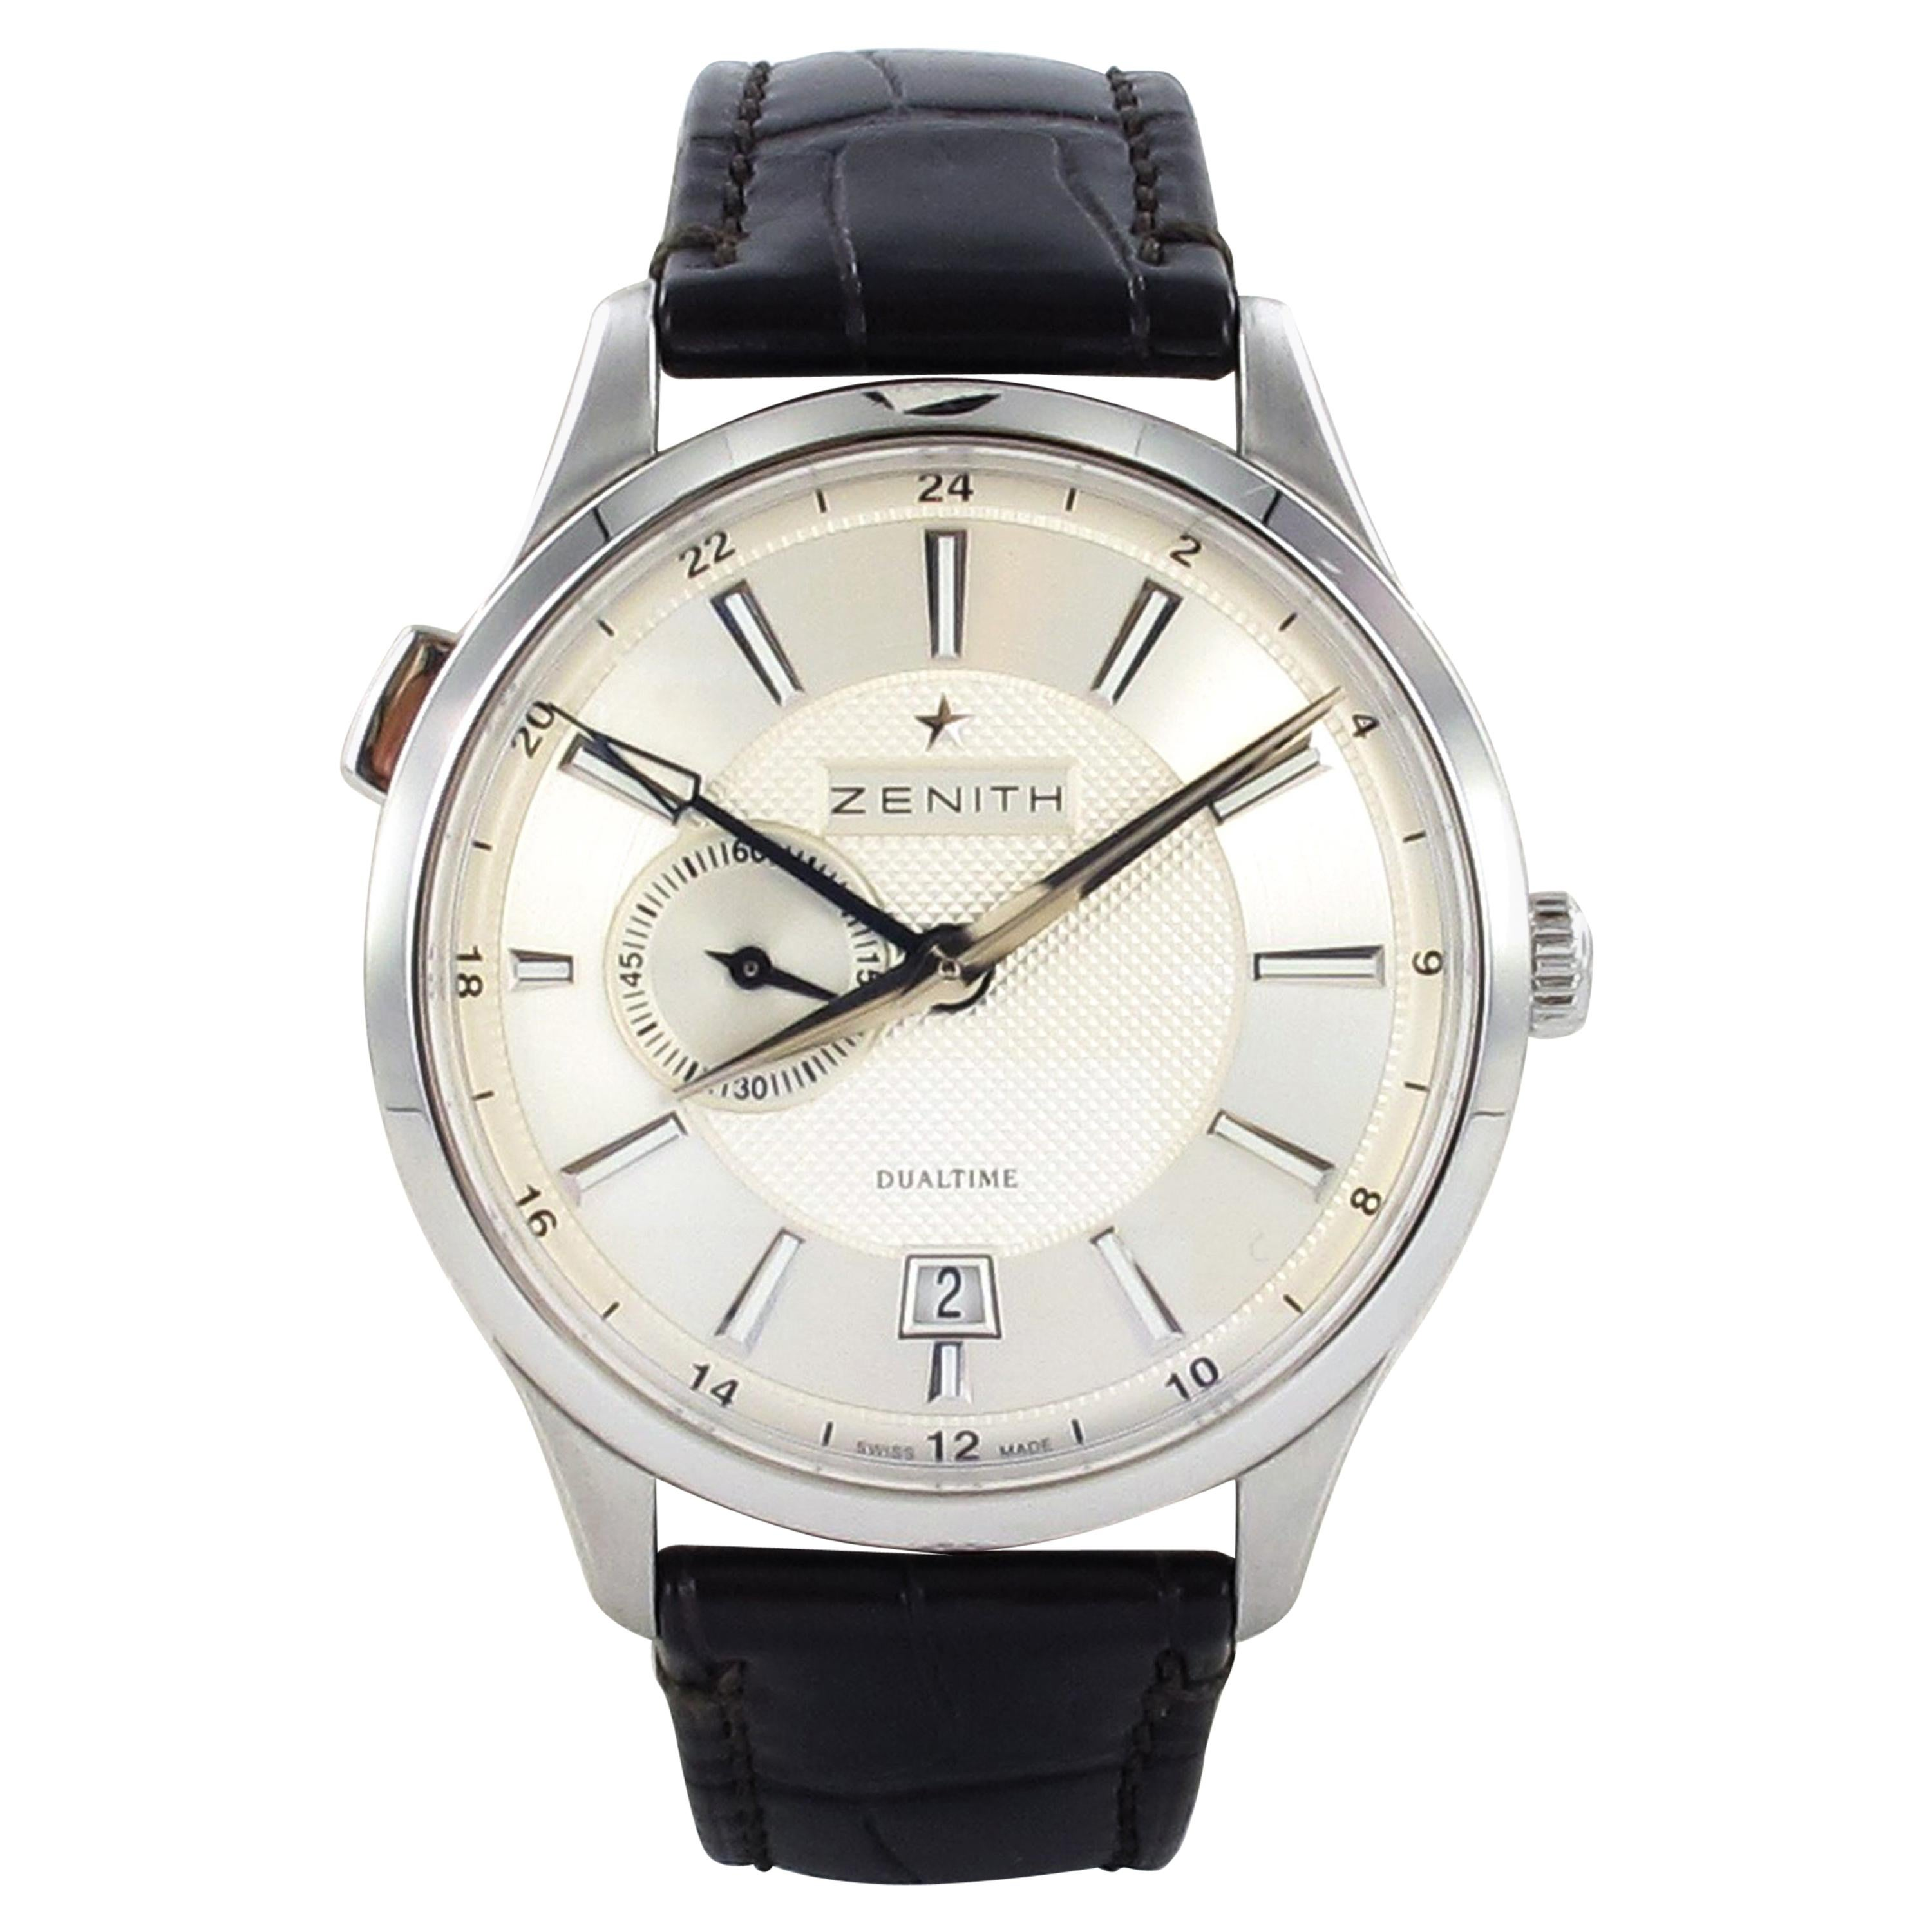 Zenith Captain Dual Time in Stainless Steel